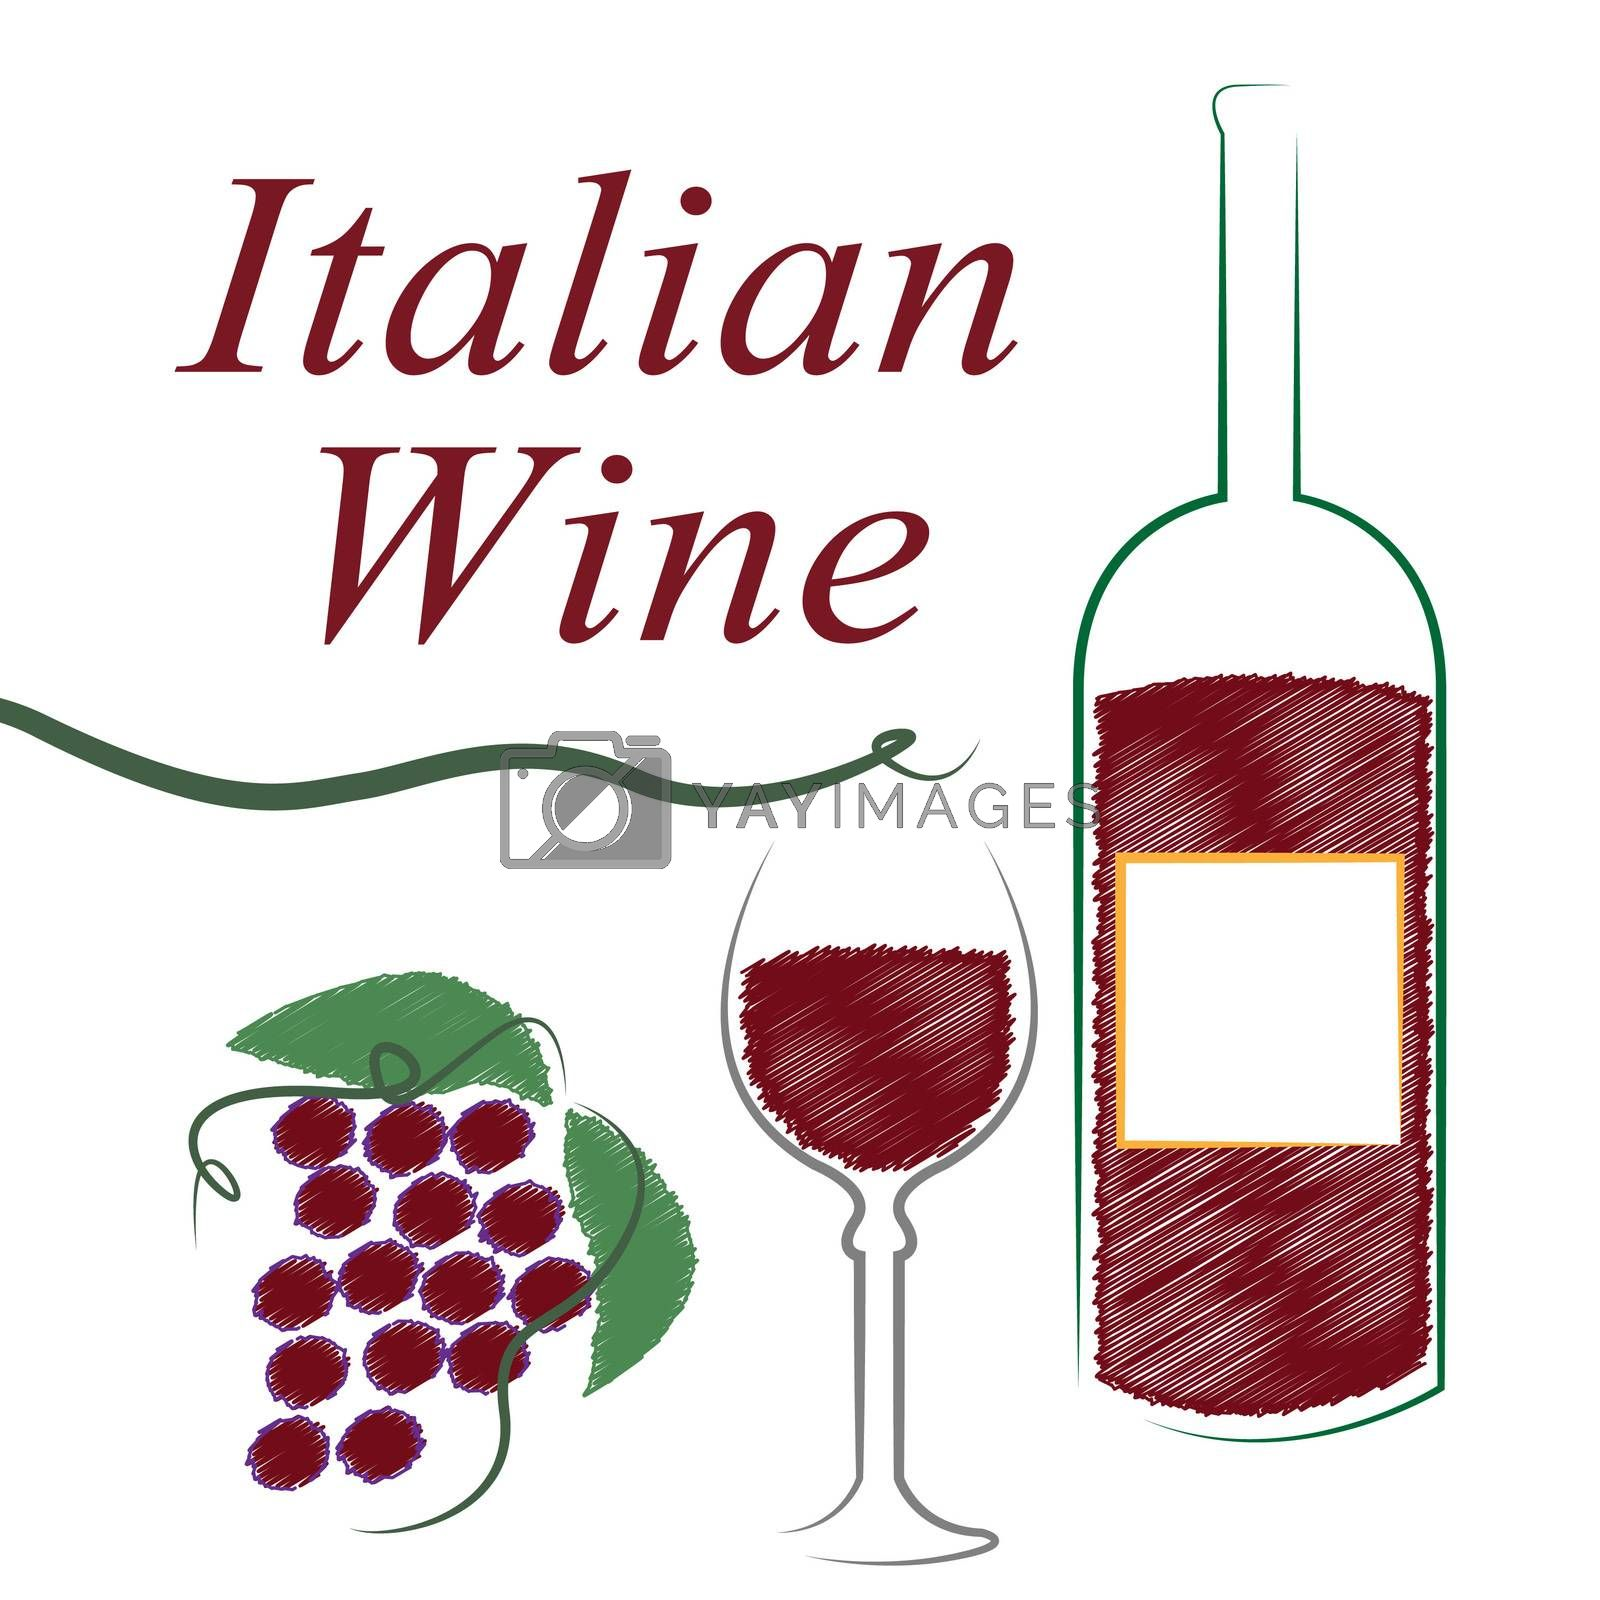 Italian Wine Shows Alcoholic Drink And Booze by stuartmiles